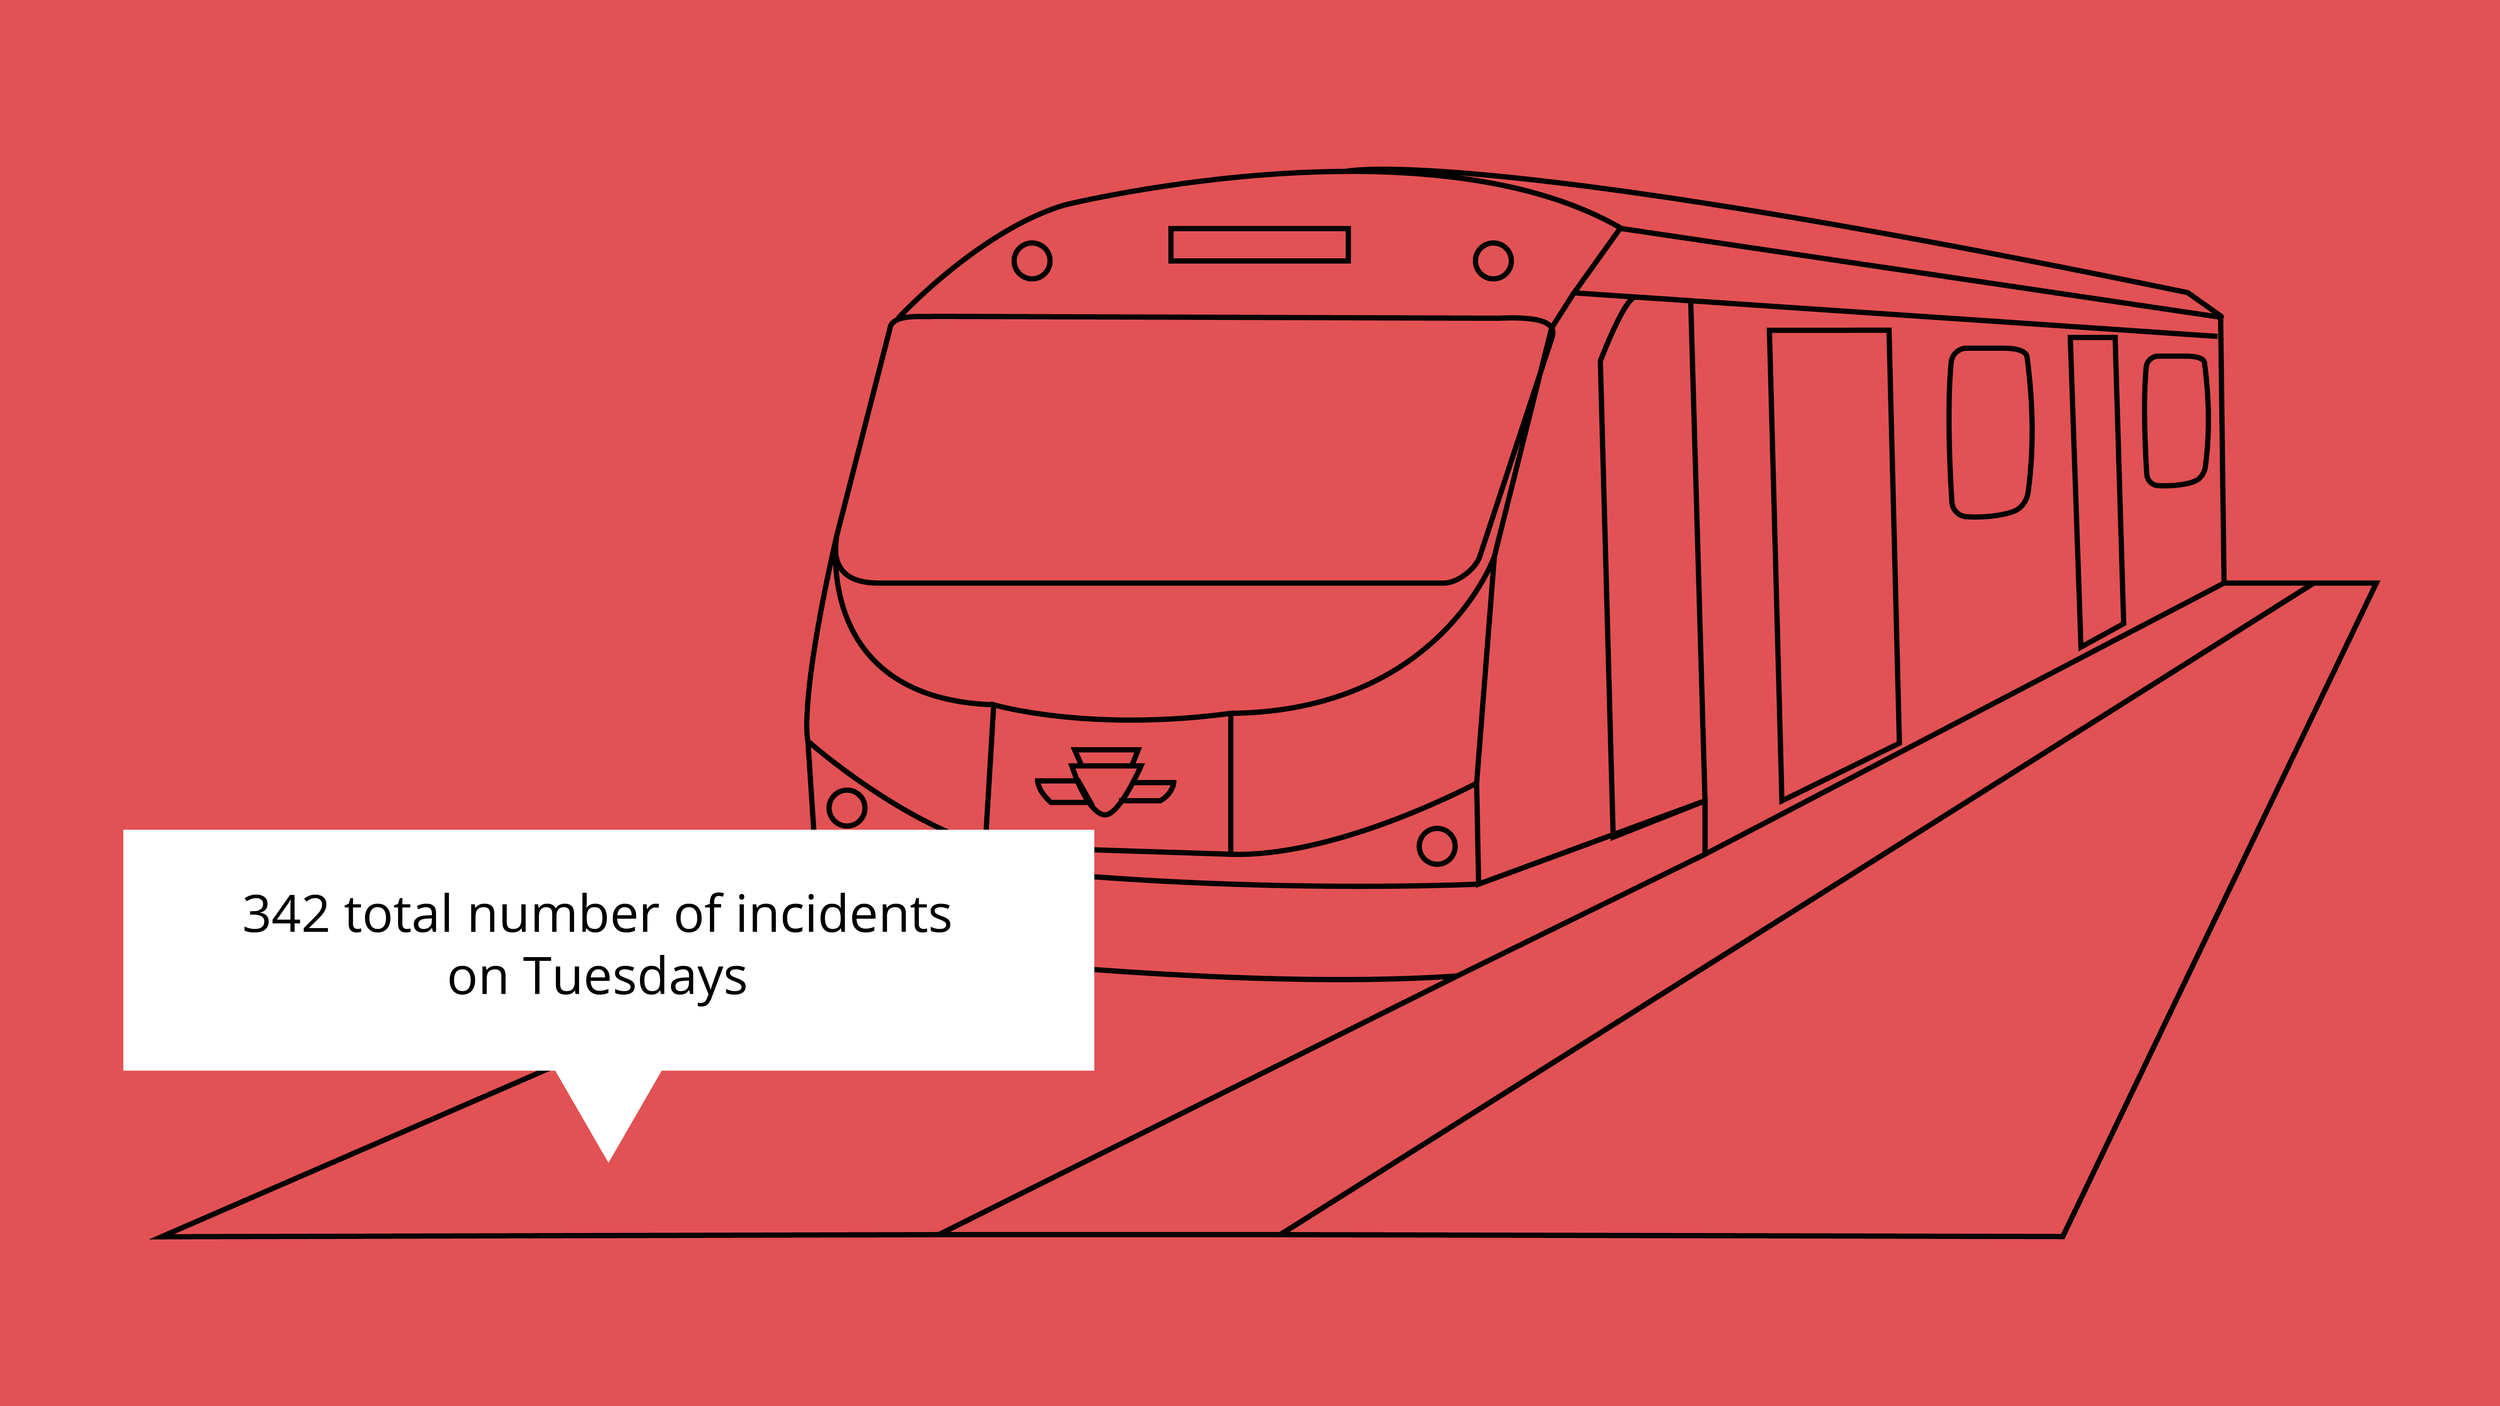 TTC Subway Delays - Informing subway users what the delays are typically caused byWebsite, Data Visualization and Web Design